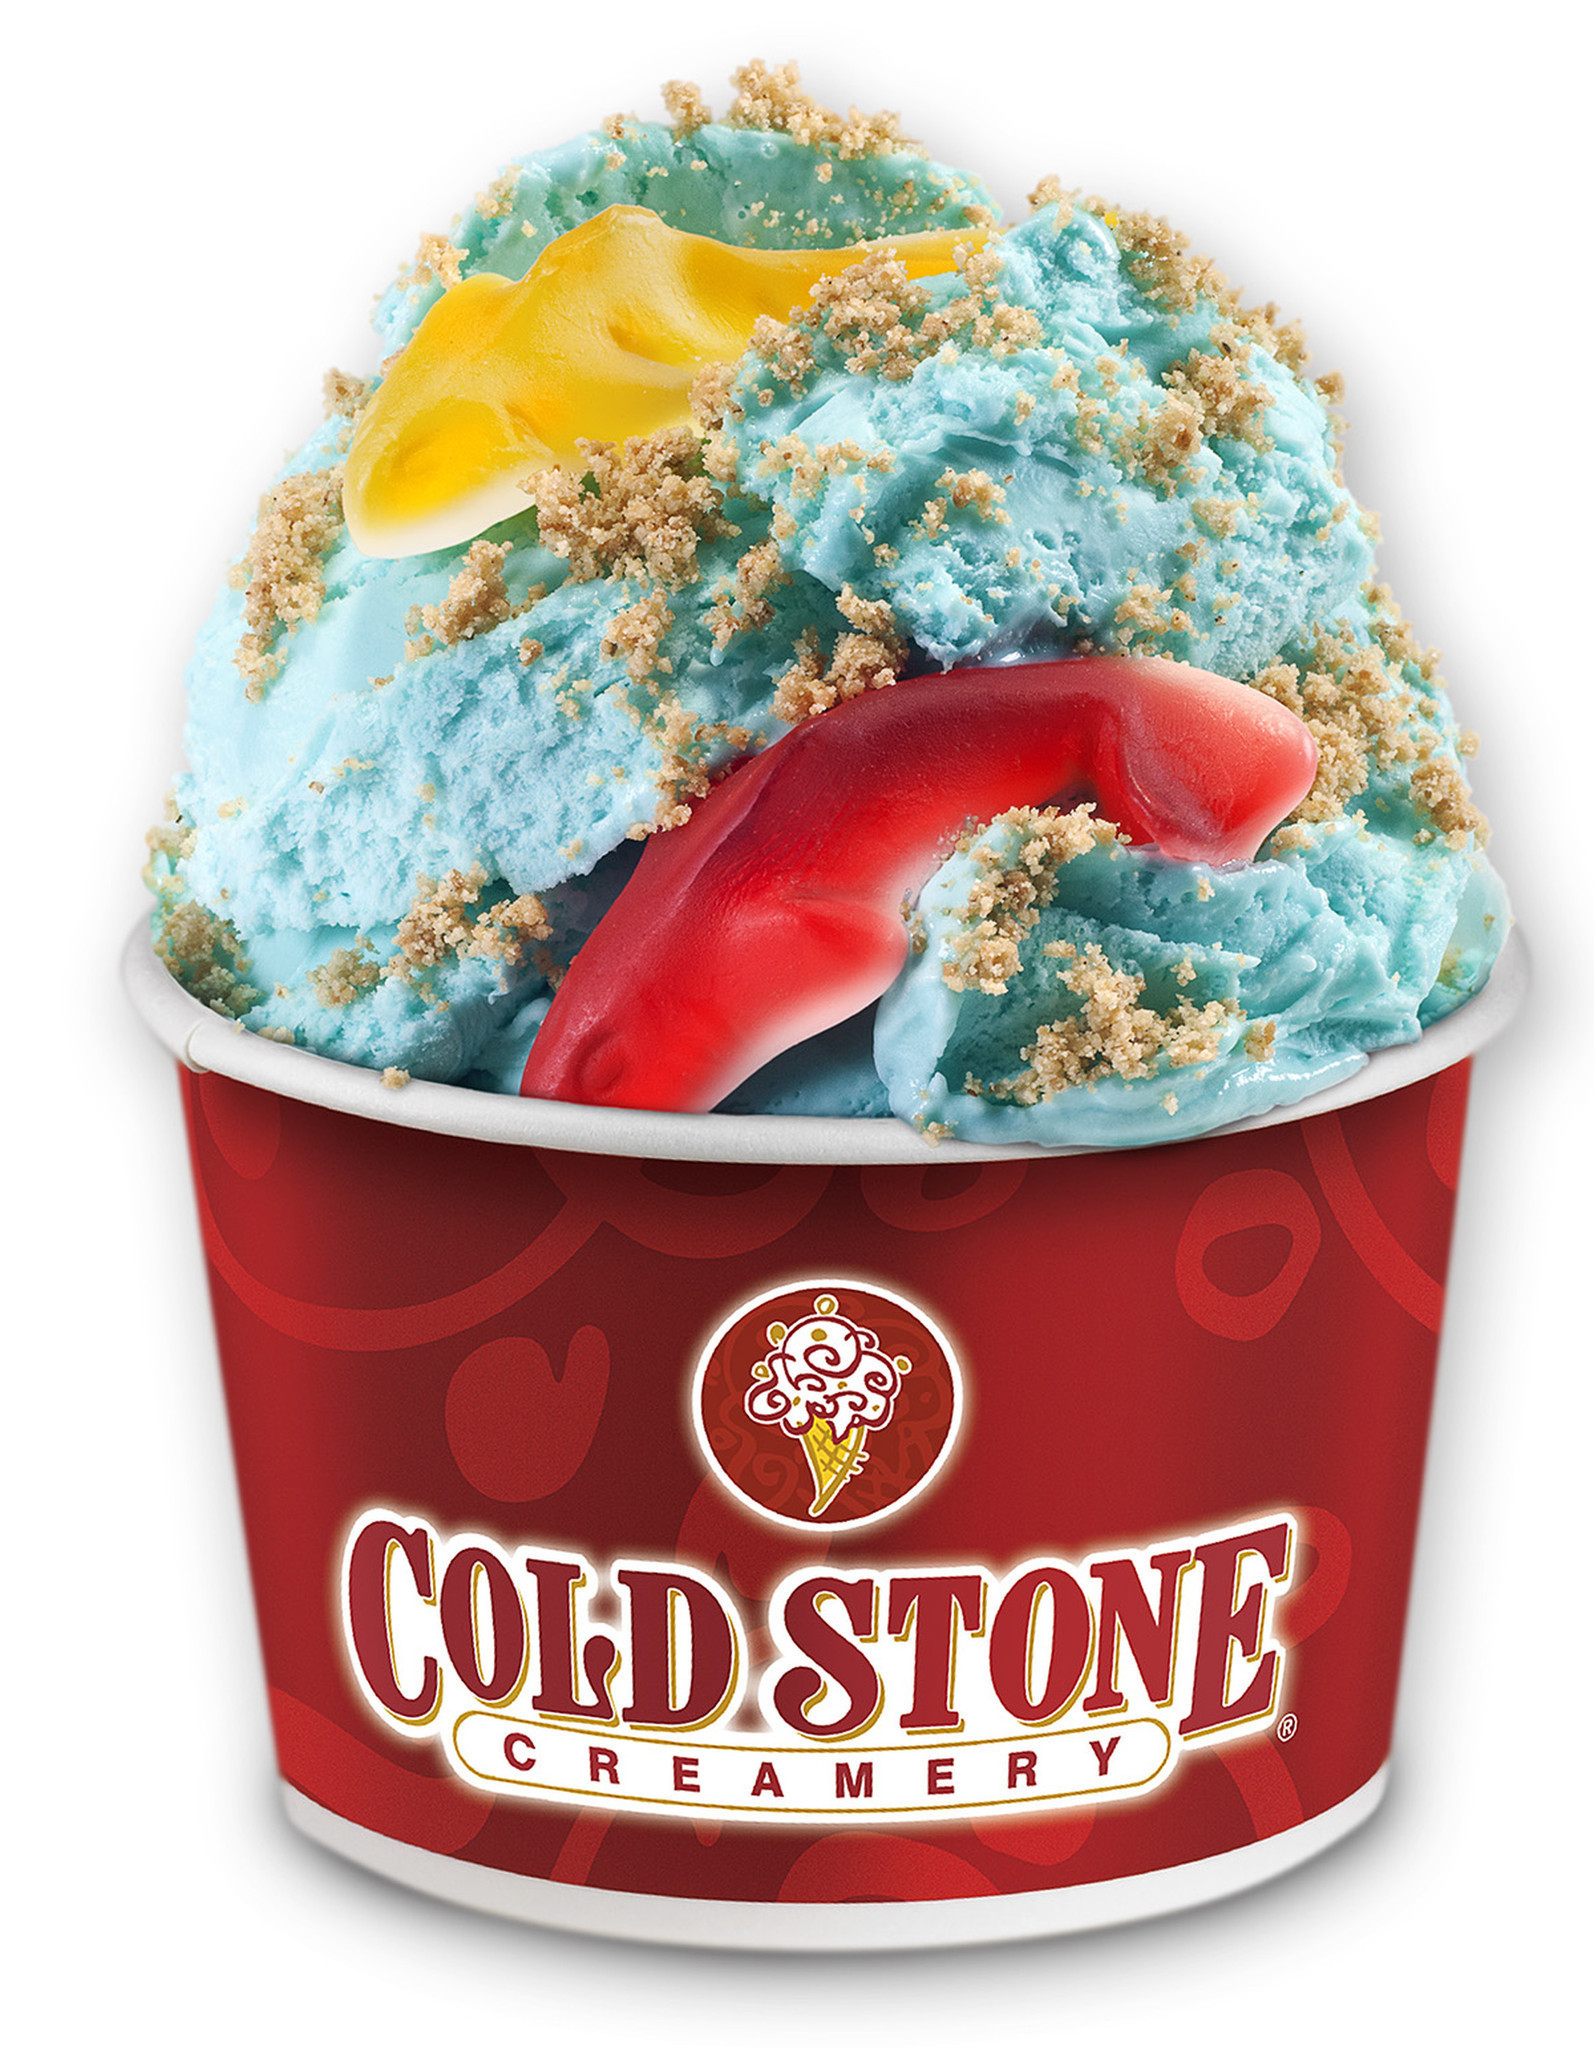 2nd cold stone creamery coming to chicago chicago tribune ccuart Image collections